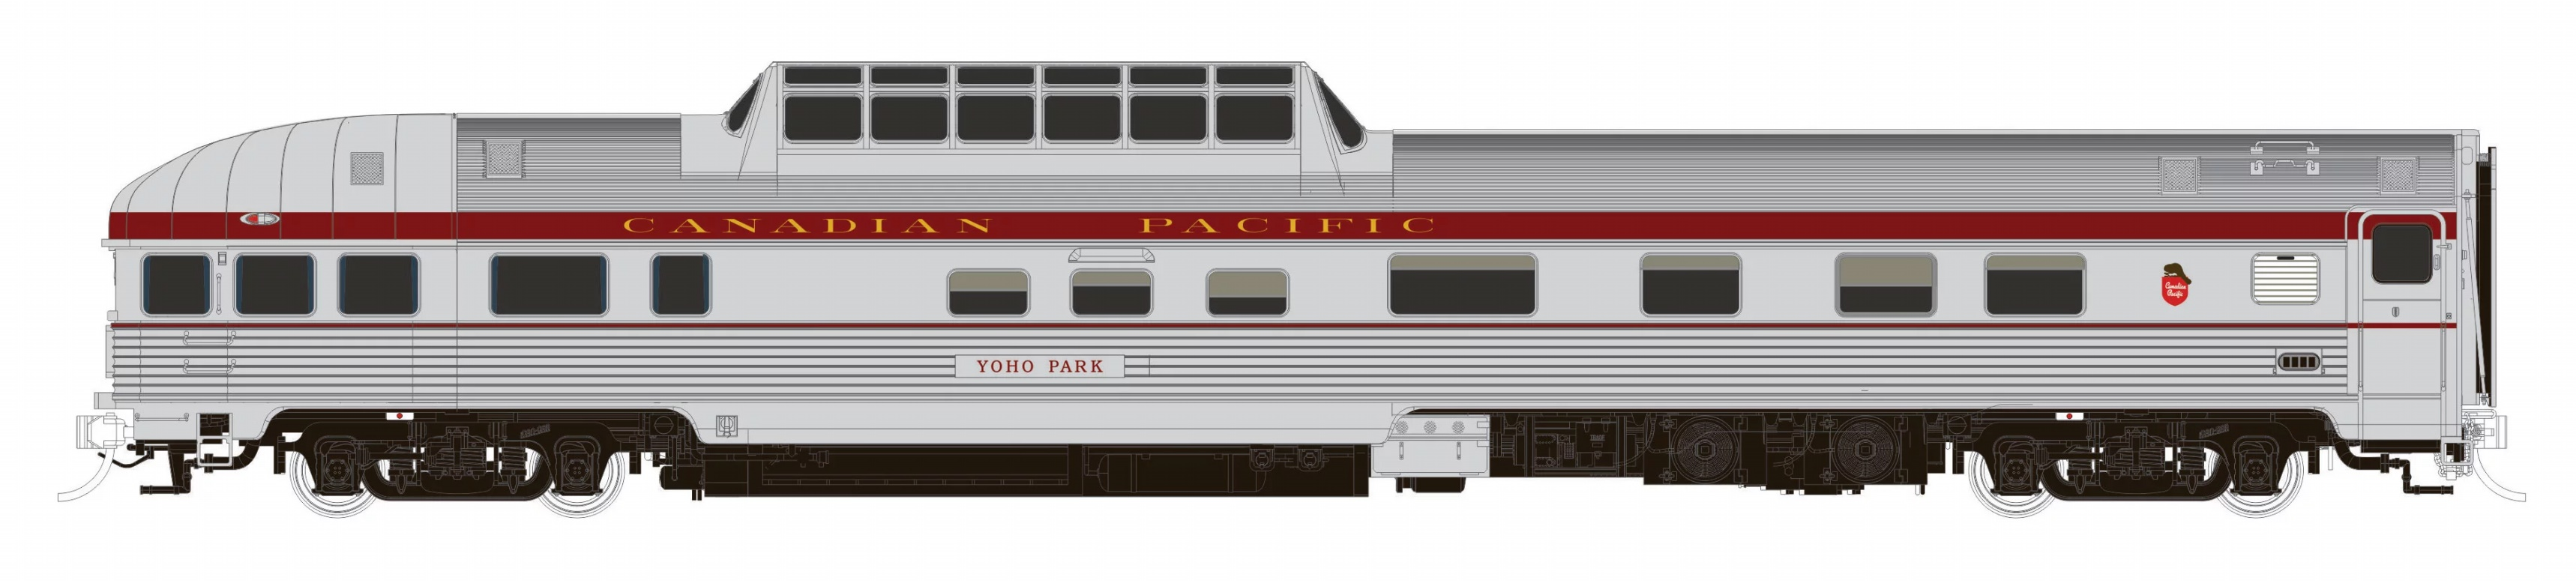 N Scale - Rapido Trains - 550002 - Passenger - Canadian Pacific - 10-pack